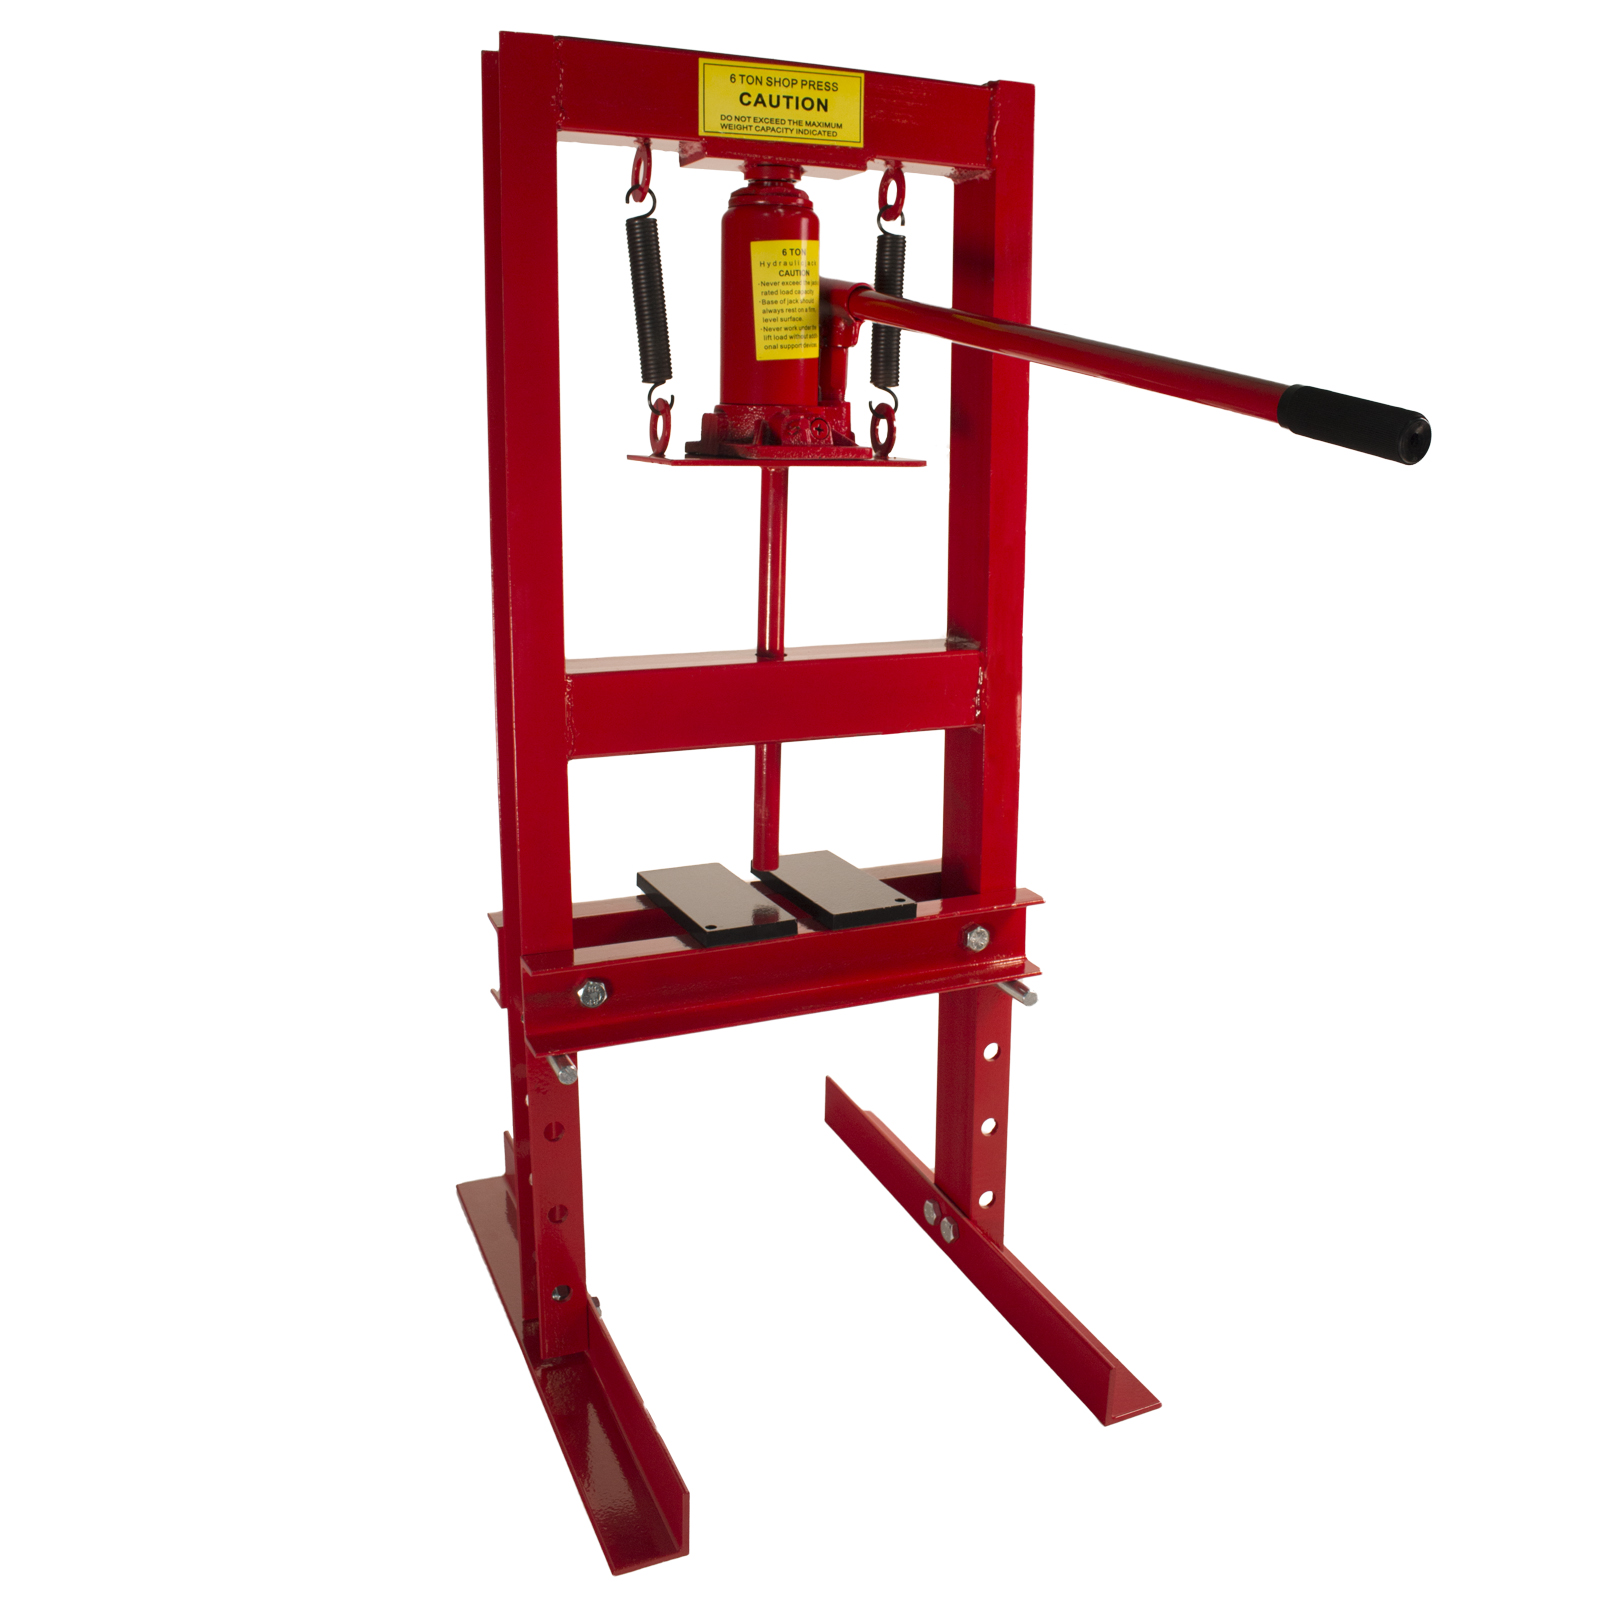 Dragway Tools Premium Steel 6 Ton, 12,000 lbs Hydraulic Bench Top Shop Press with Press Plates at Sears.com